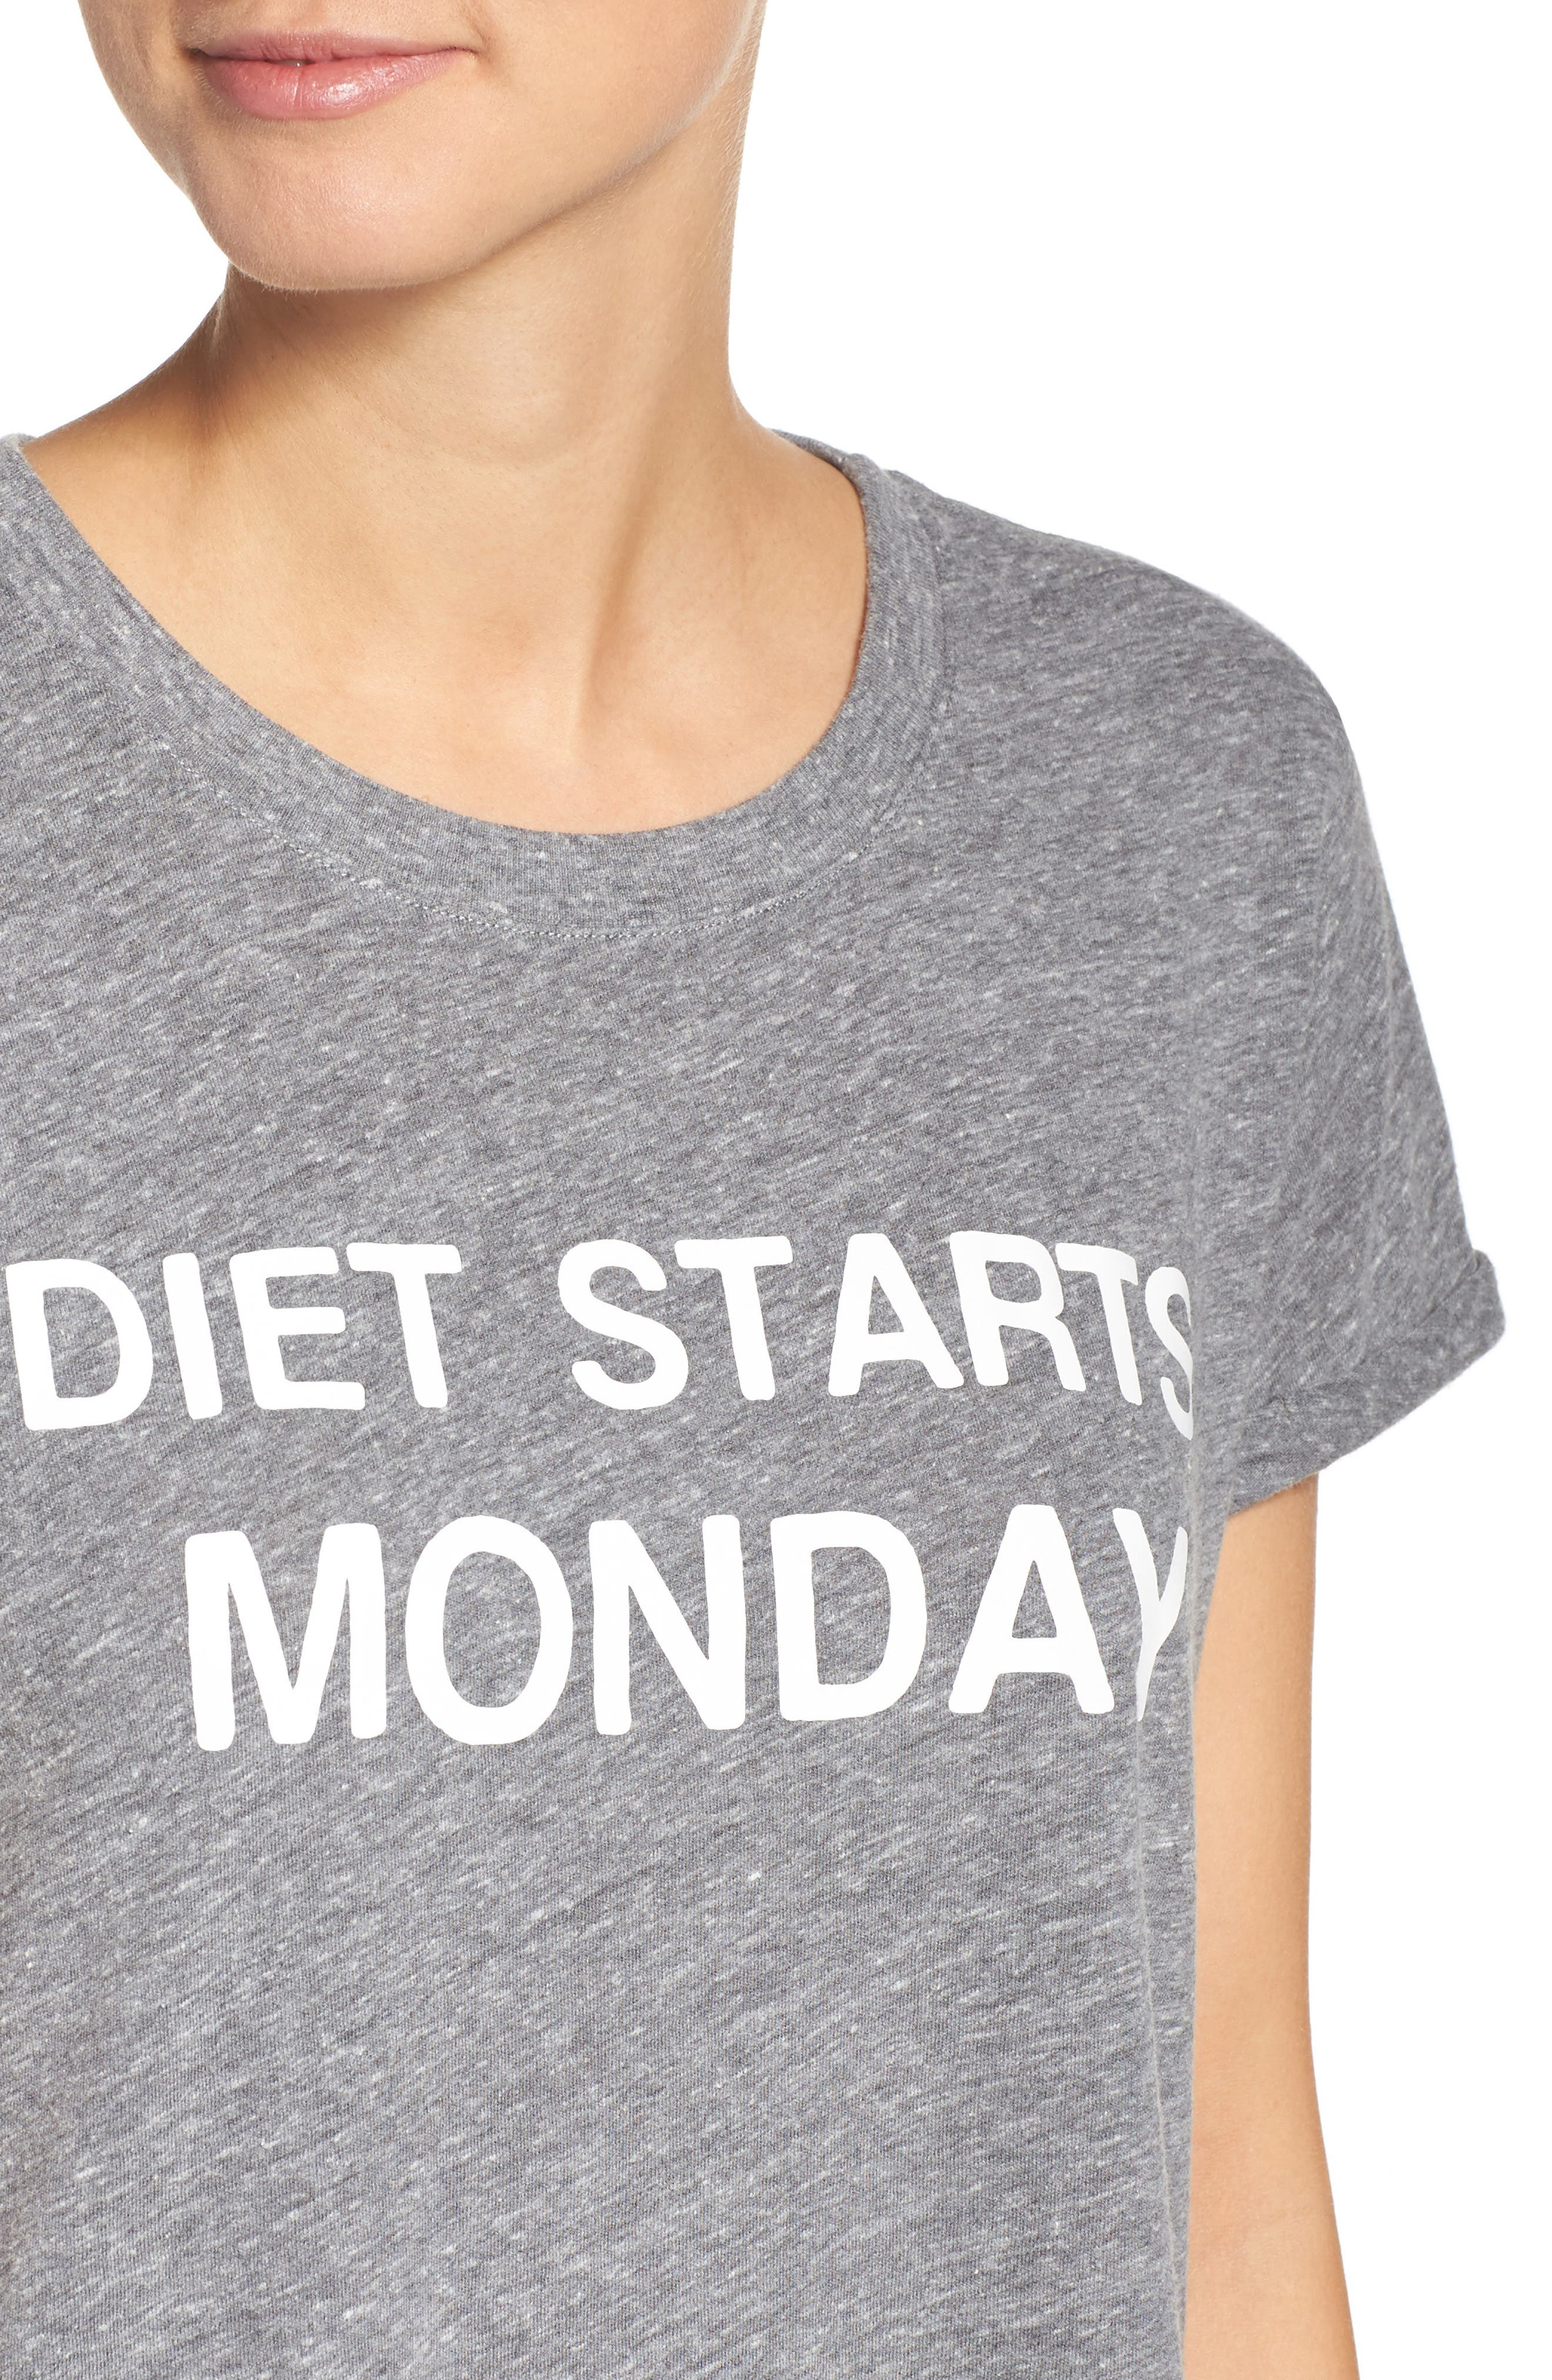 Diet Starts Monday Tee,                             Alternate thumbnail 4, color,